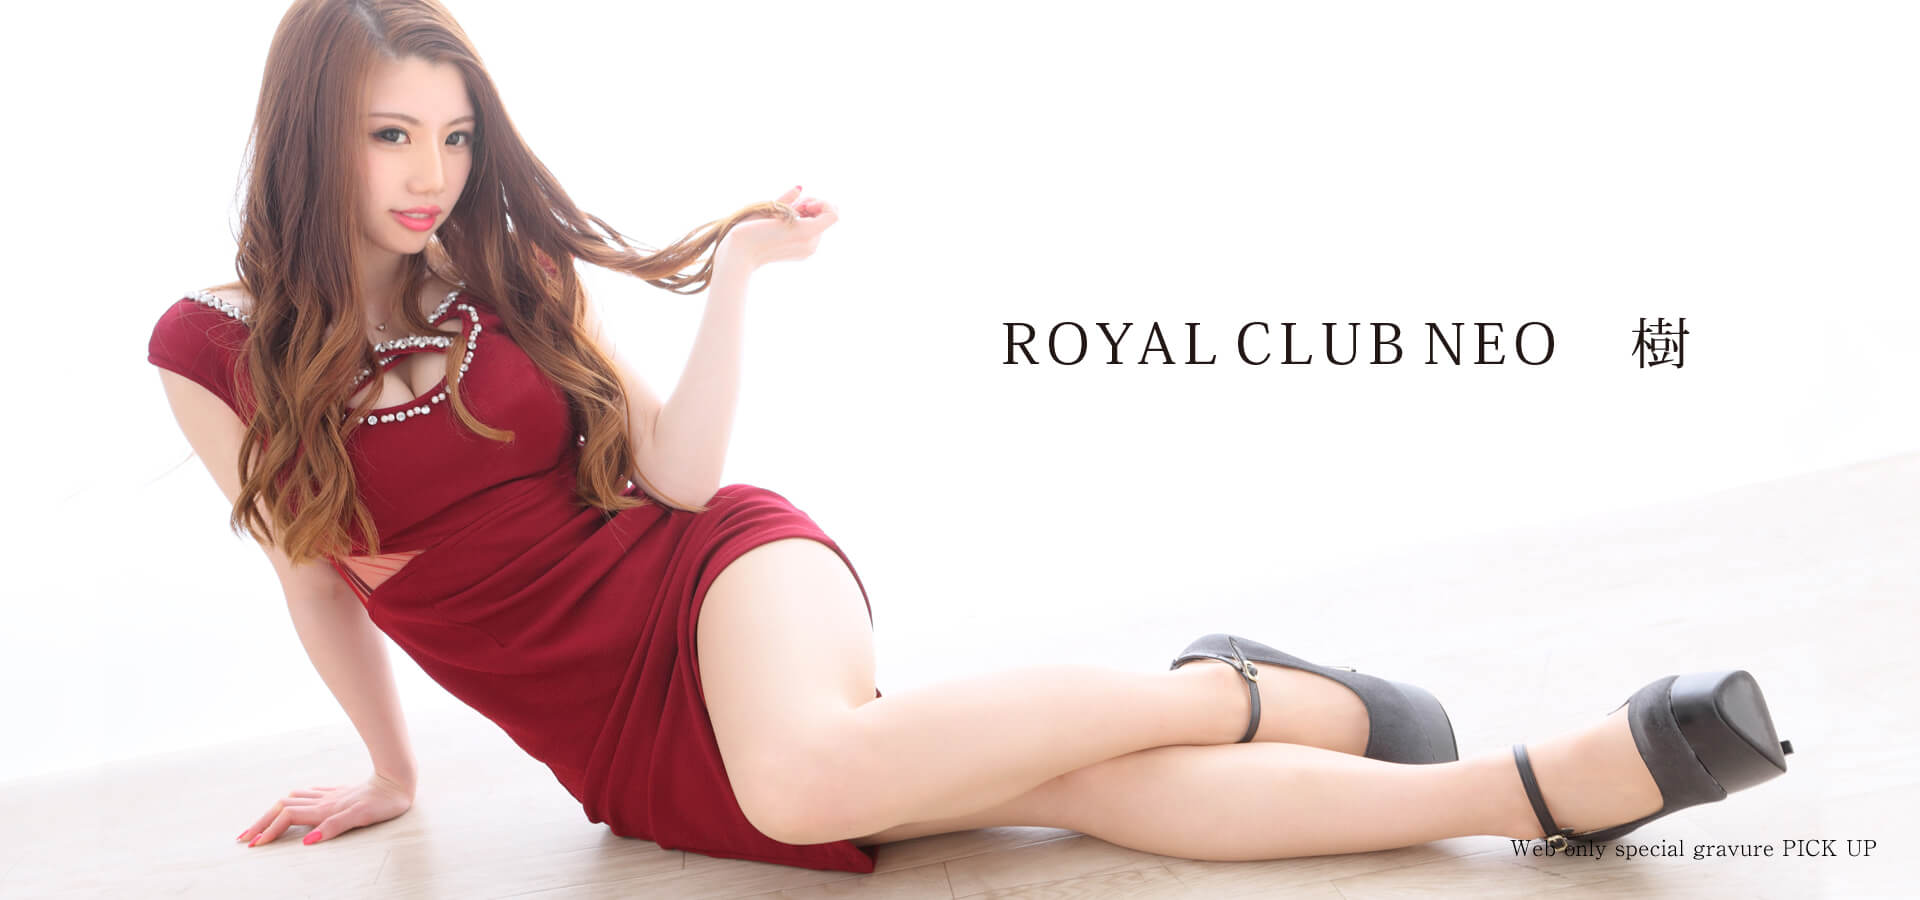 大咲 樹 / ROYAL CLUB NEO